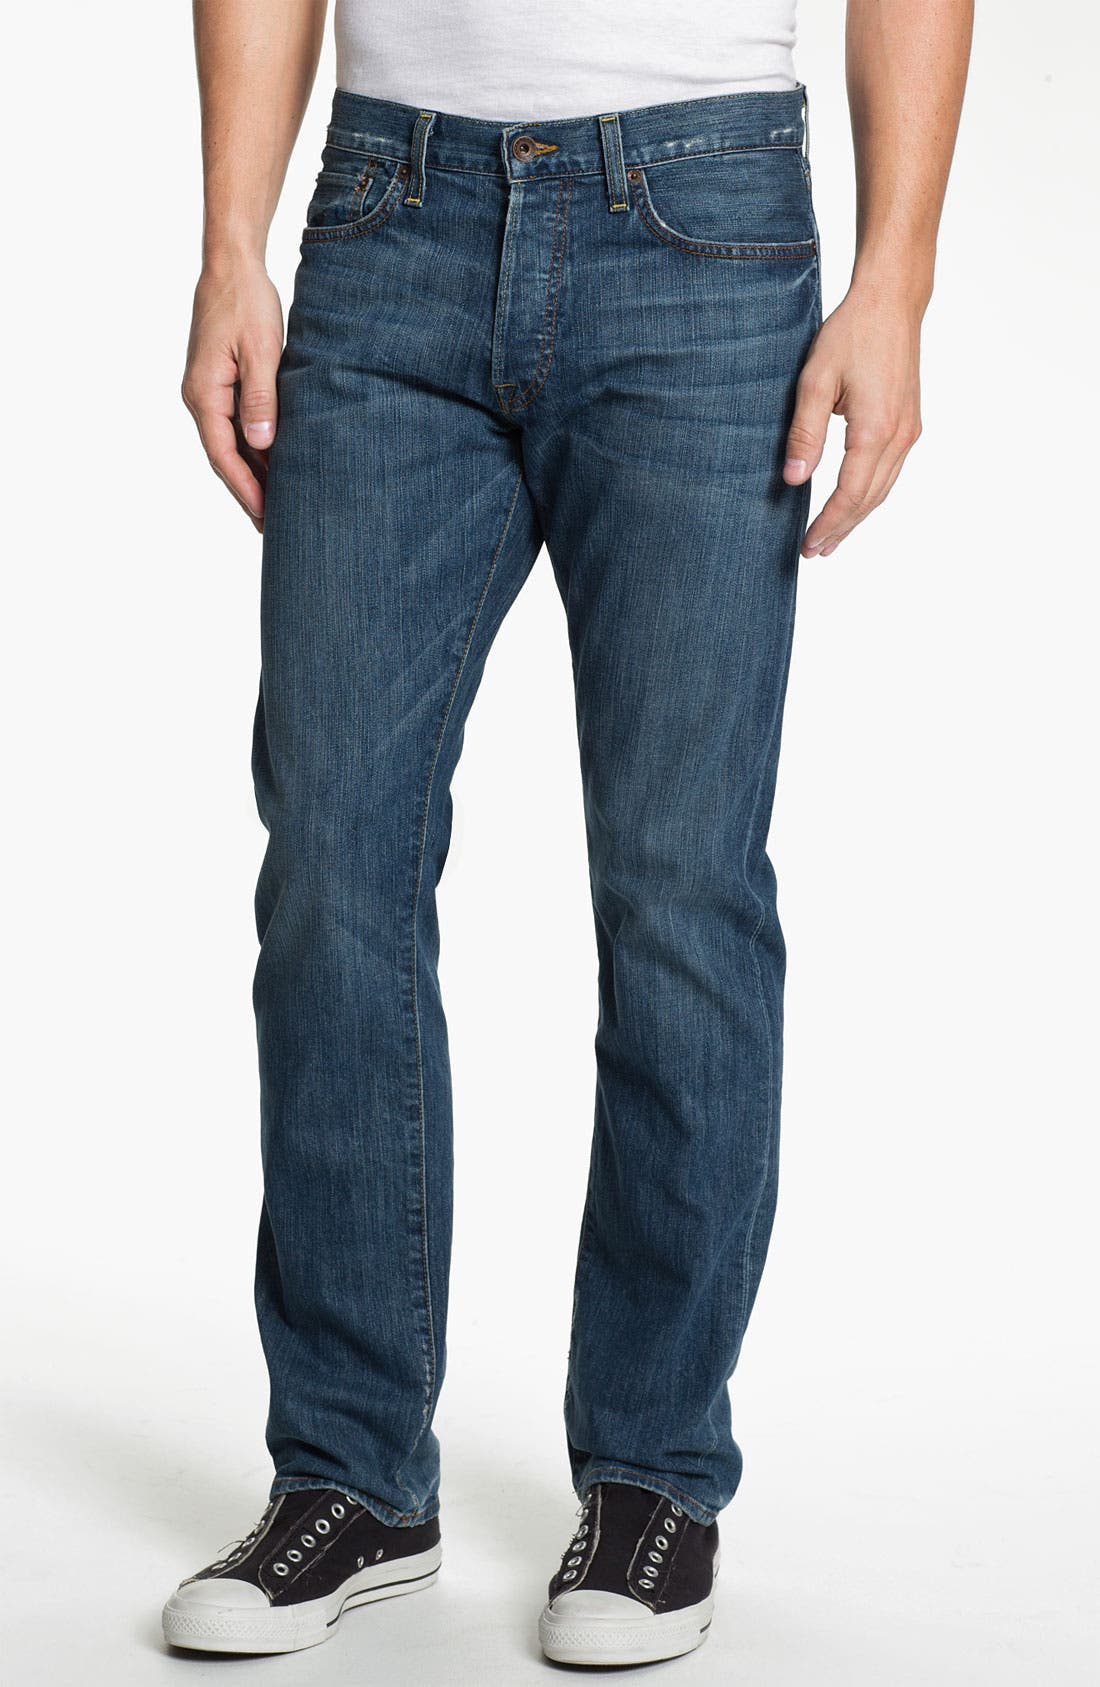 Alternate Image 1 Selected - Lucky Brand '121 Heritage' Slim Straight Leg Jeans (Ol' Vicksburg)